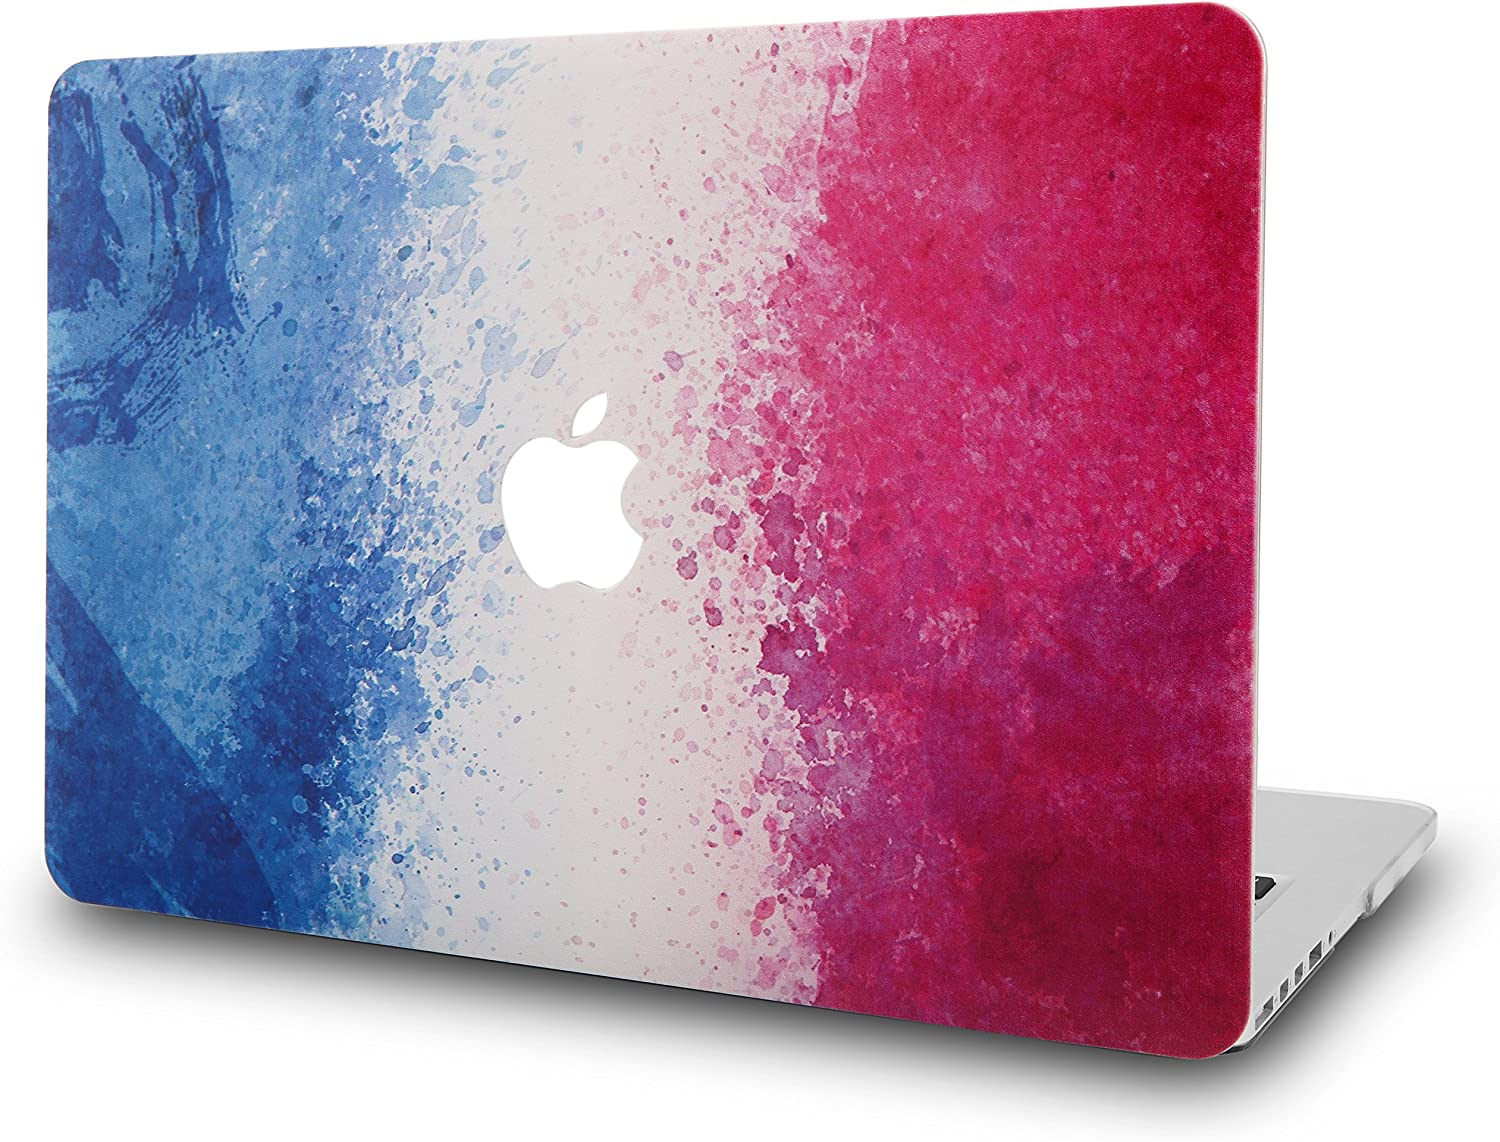 KECC Laptop Case for MacBook Air 13 Inch Plastic Case Hard Shell Cover A1466/A1369 (French Flag)